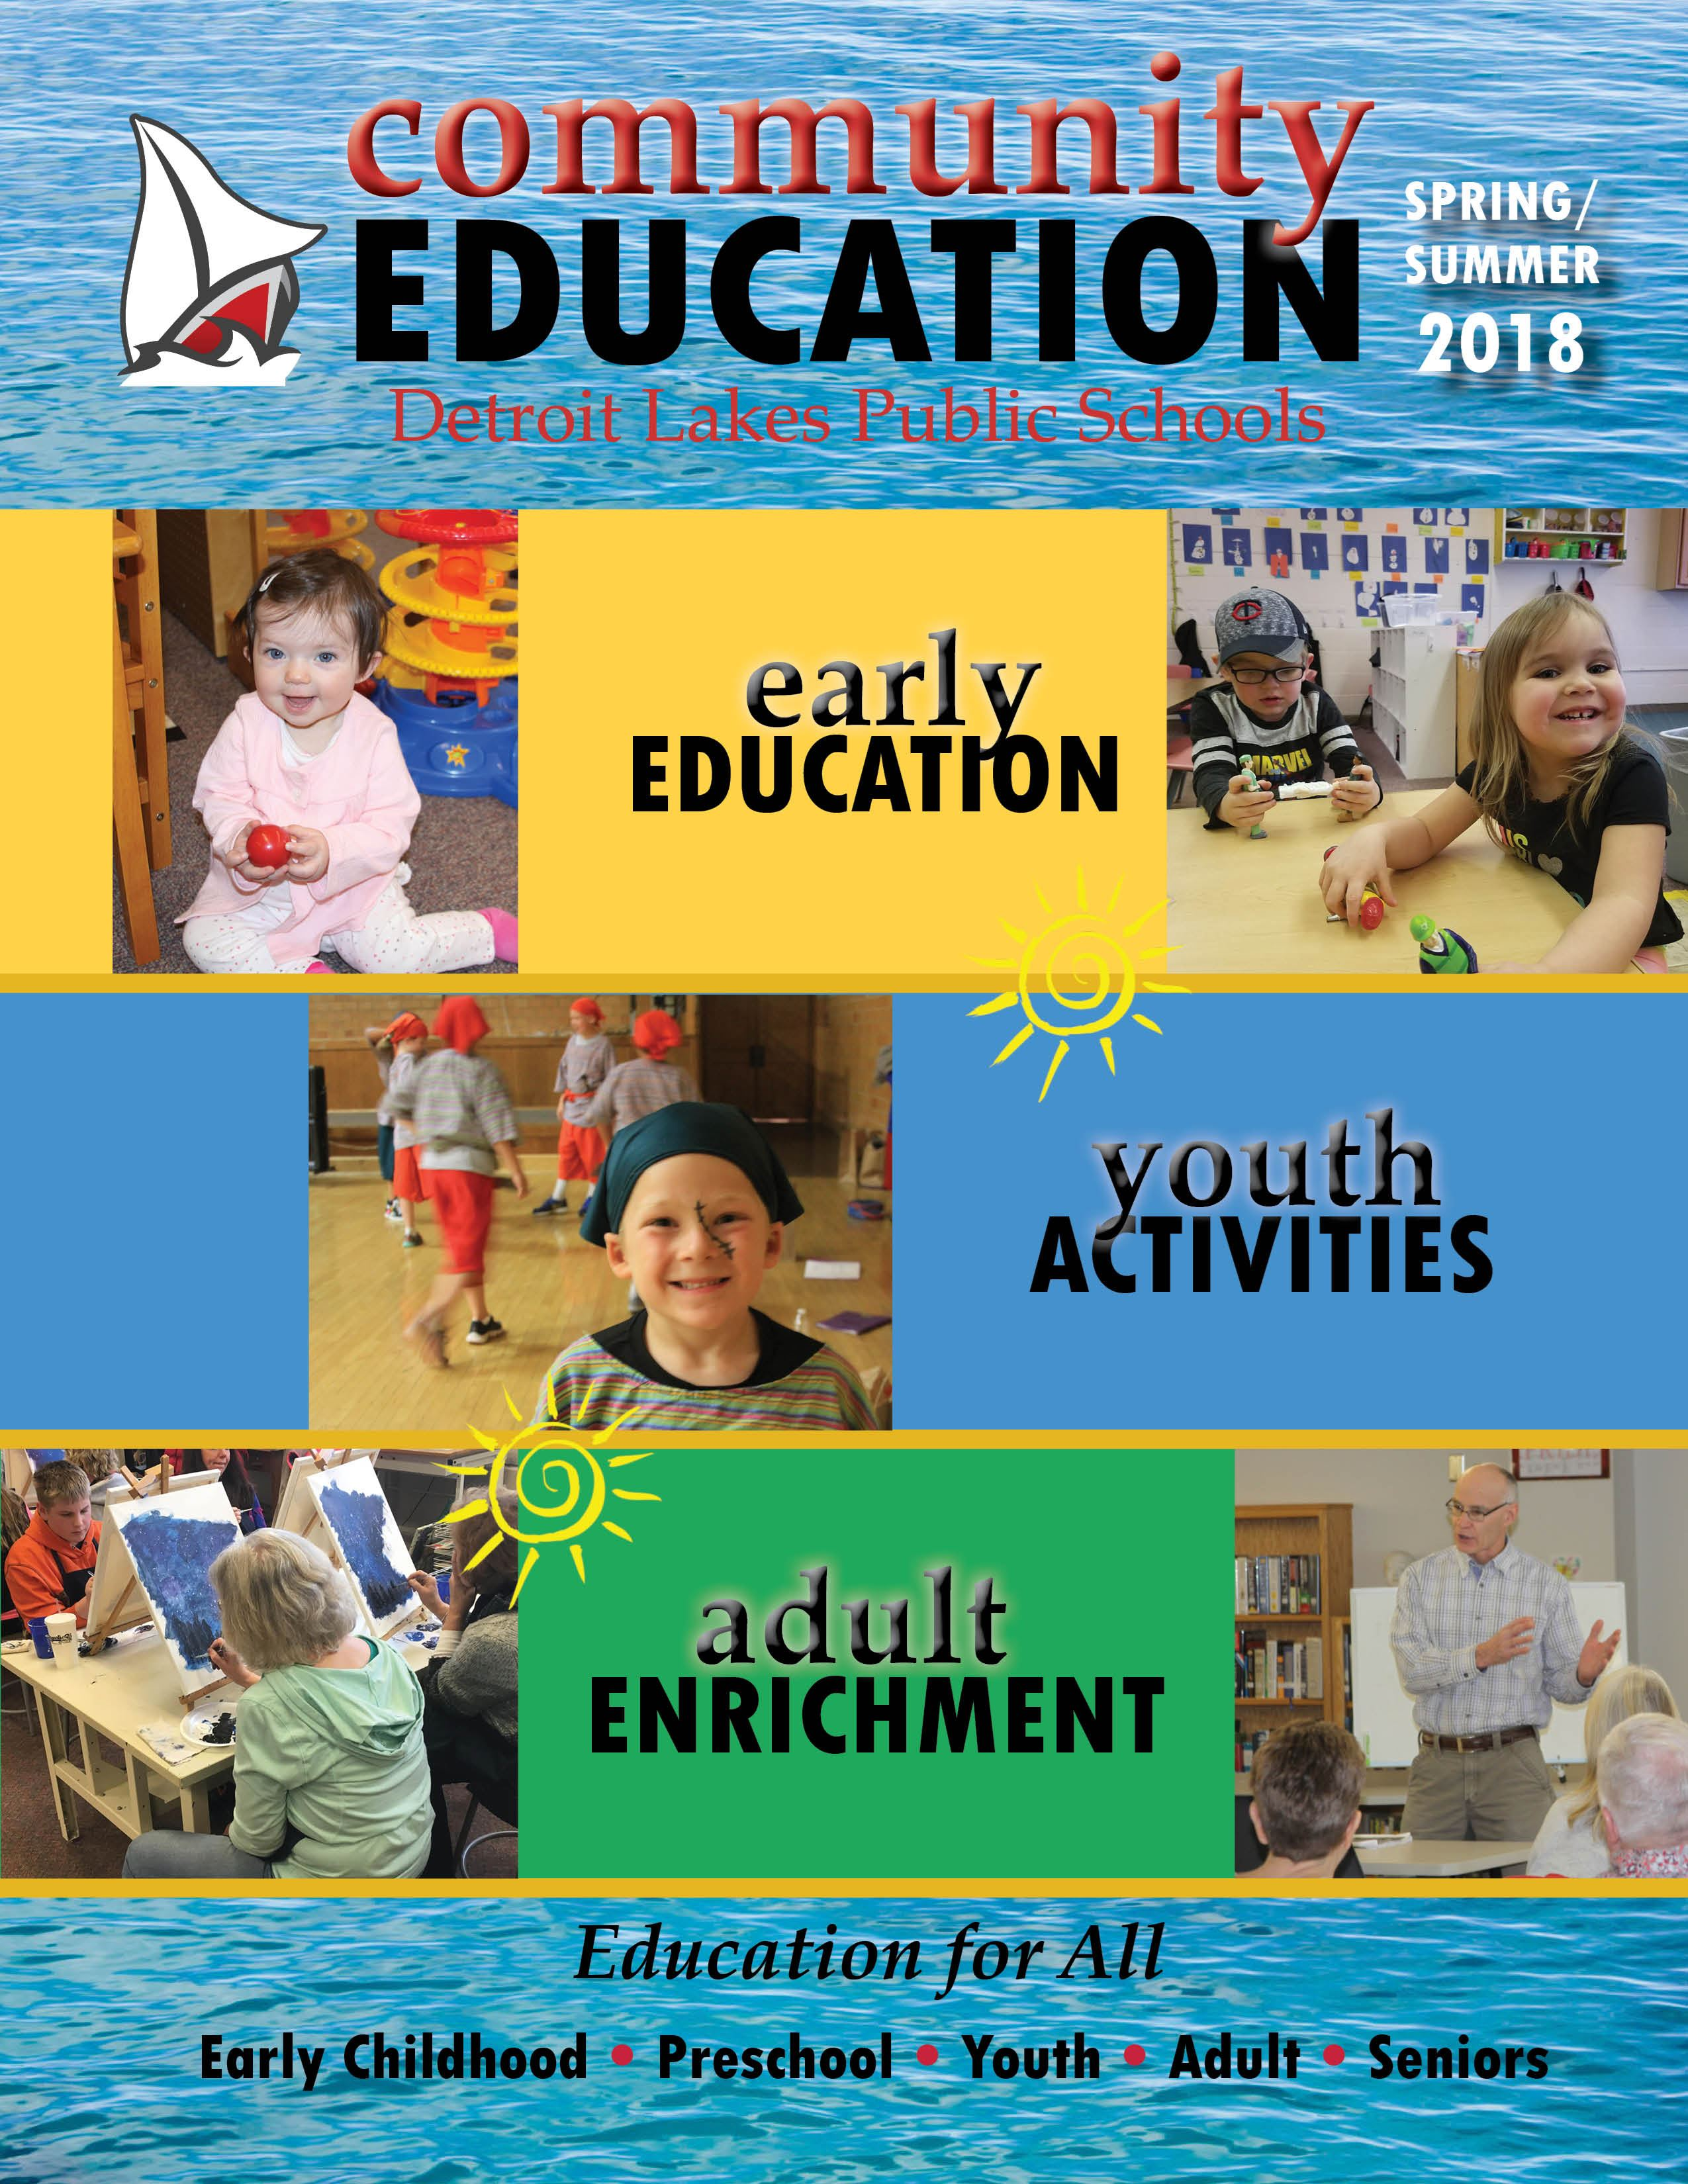 Spring/Summer 2018 Community Education cover